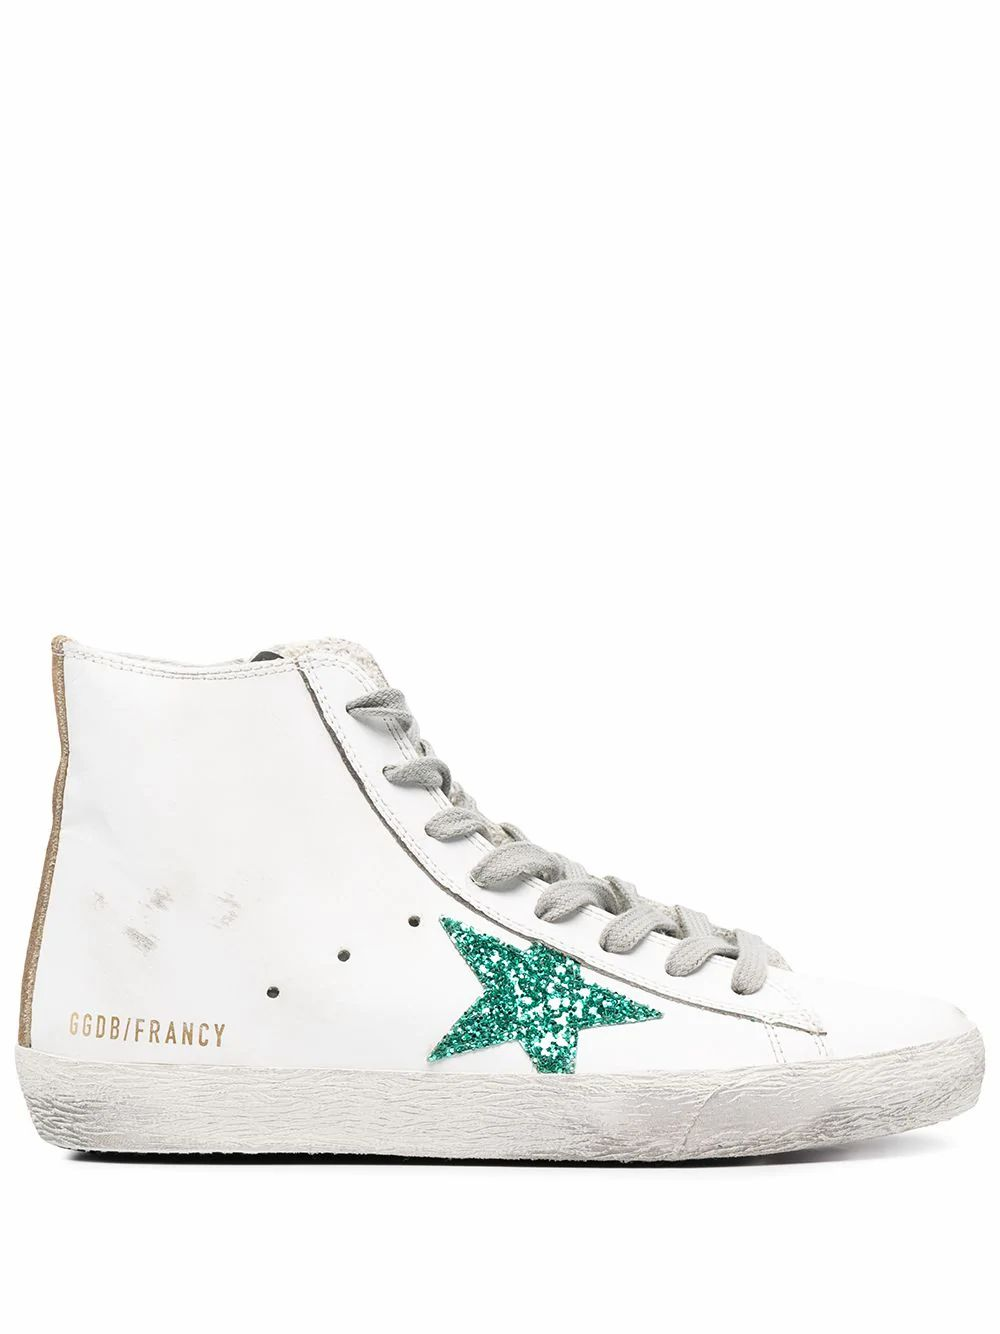 Golden Goose GOLDEN GOOSE WOMEN'S GWF00113F00020610240 WHITE LEATHER HI TOP SNEAKERS